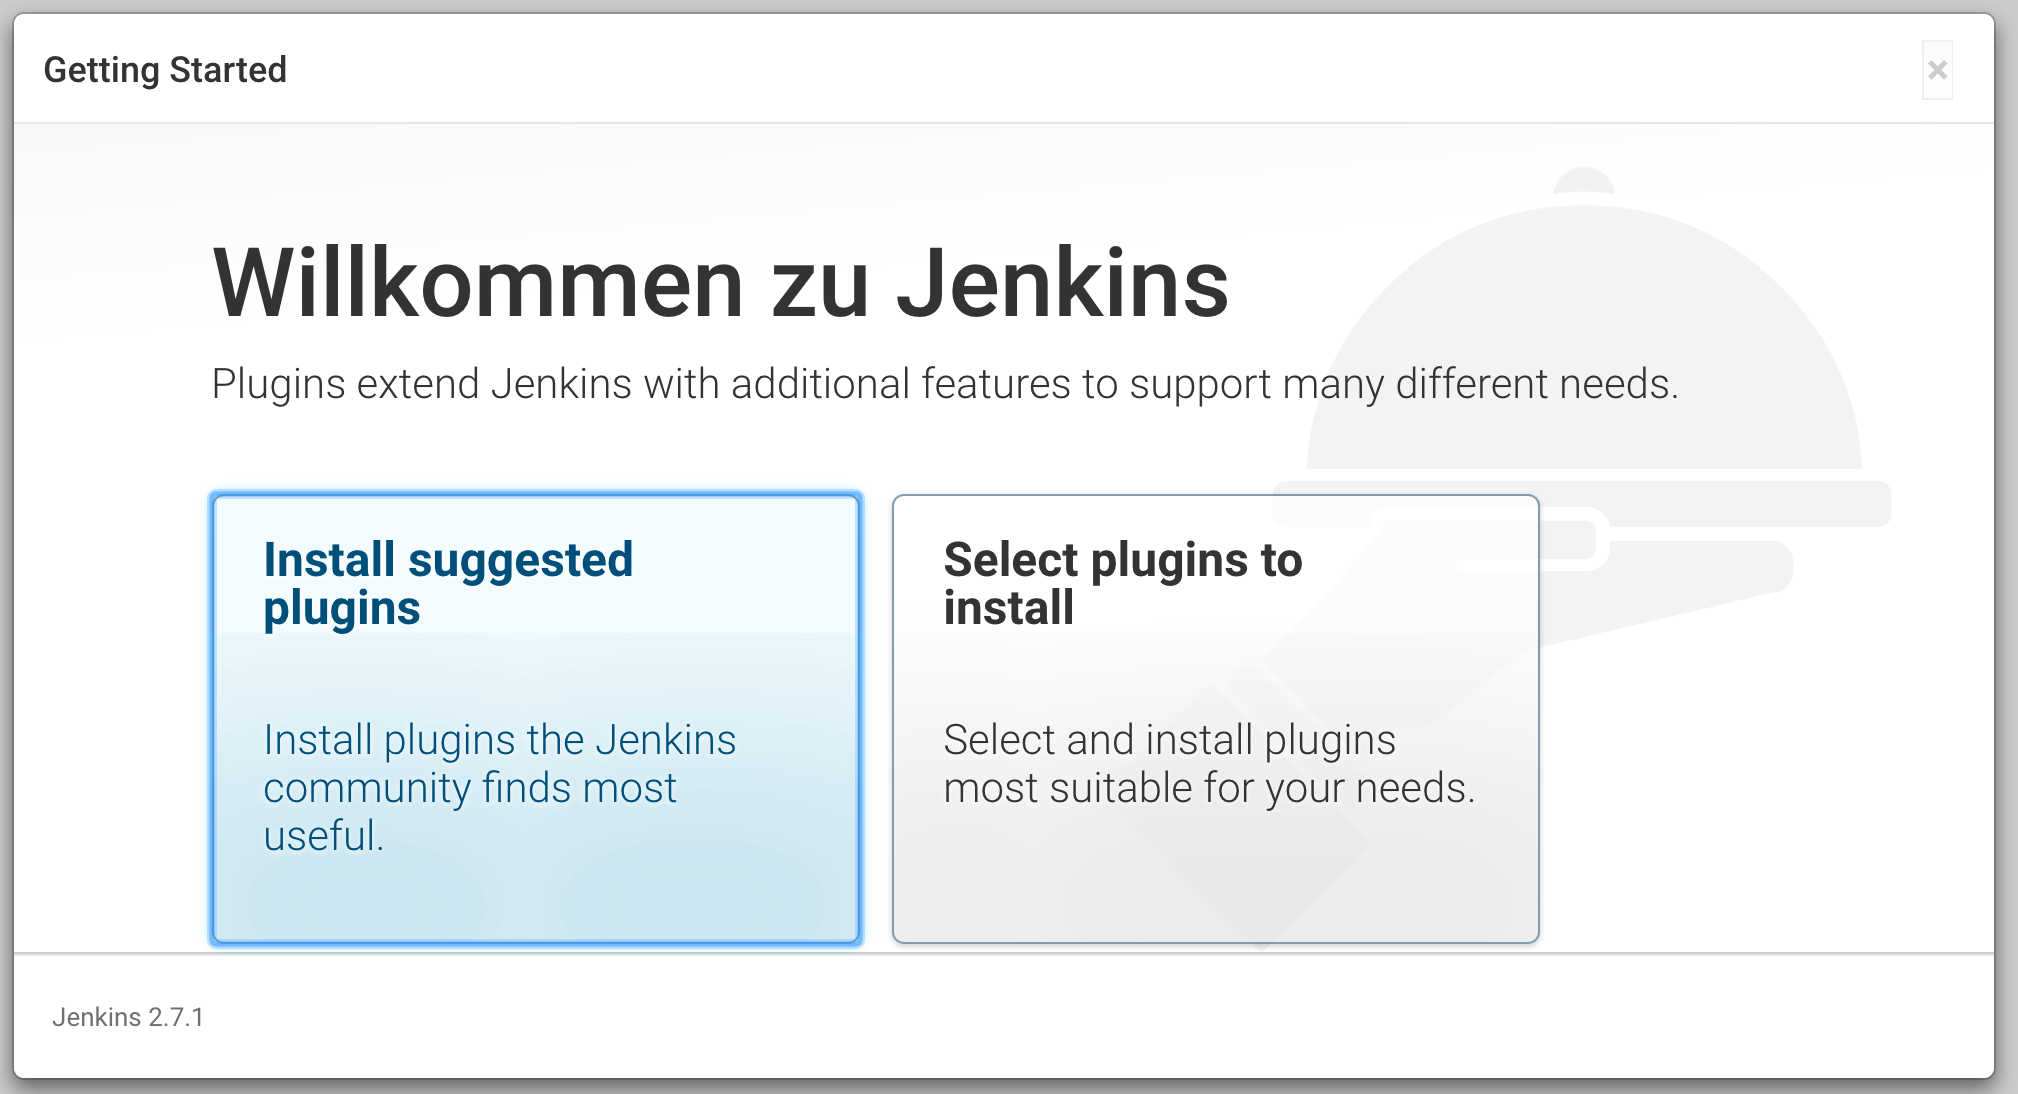 Robot framework tutorial 2016 integration with jenkins this is not primary a blog post on jenkins itself but installation of the suggested plugins makes a lot of sense as otherwise some really basic features baditri Gallery